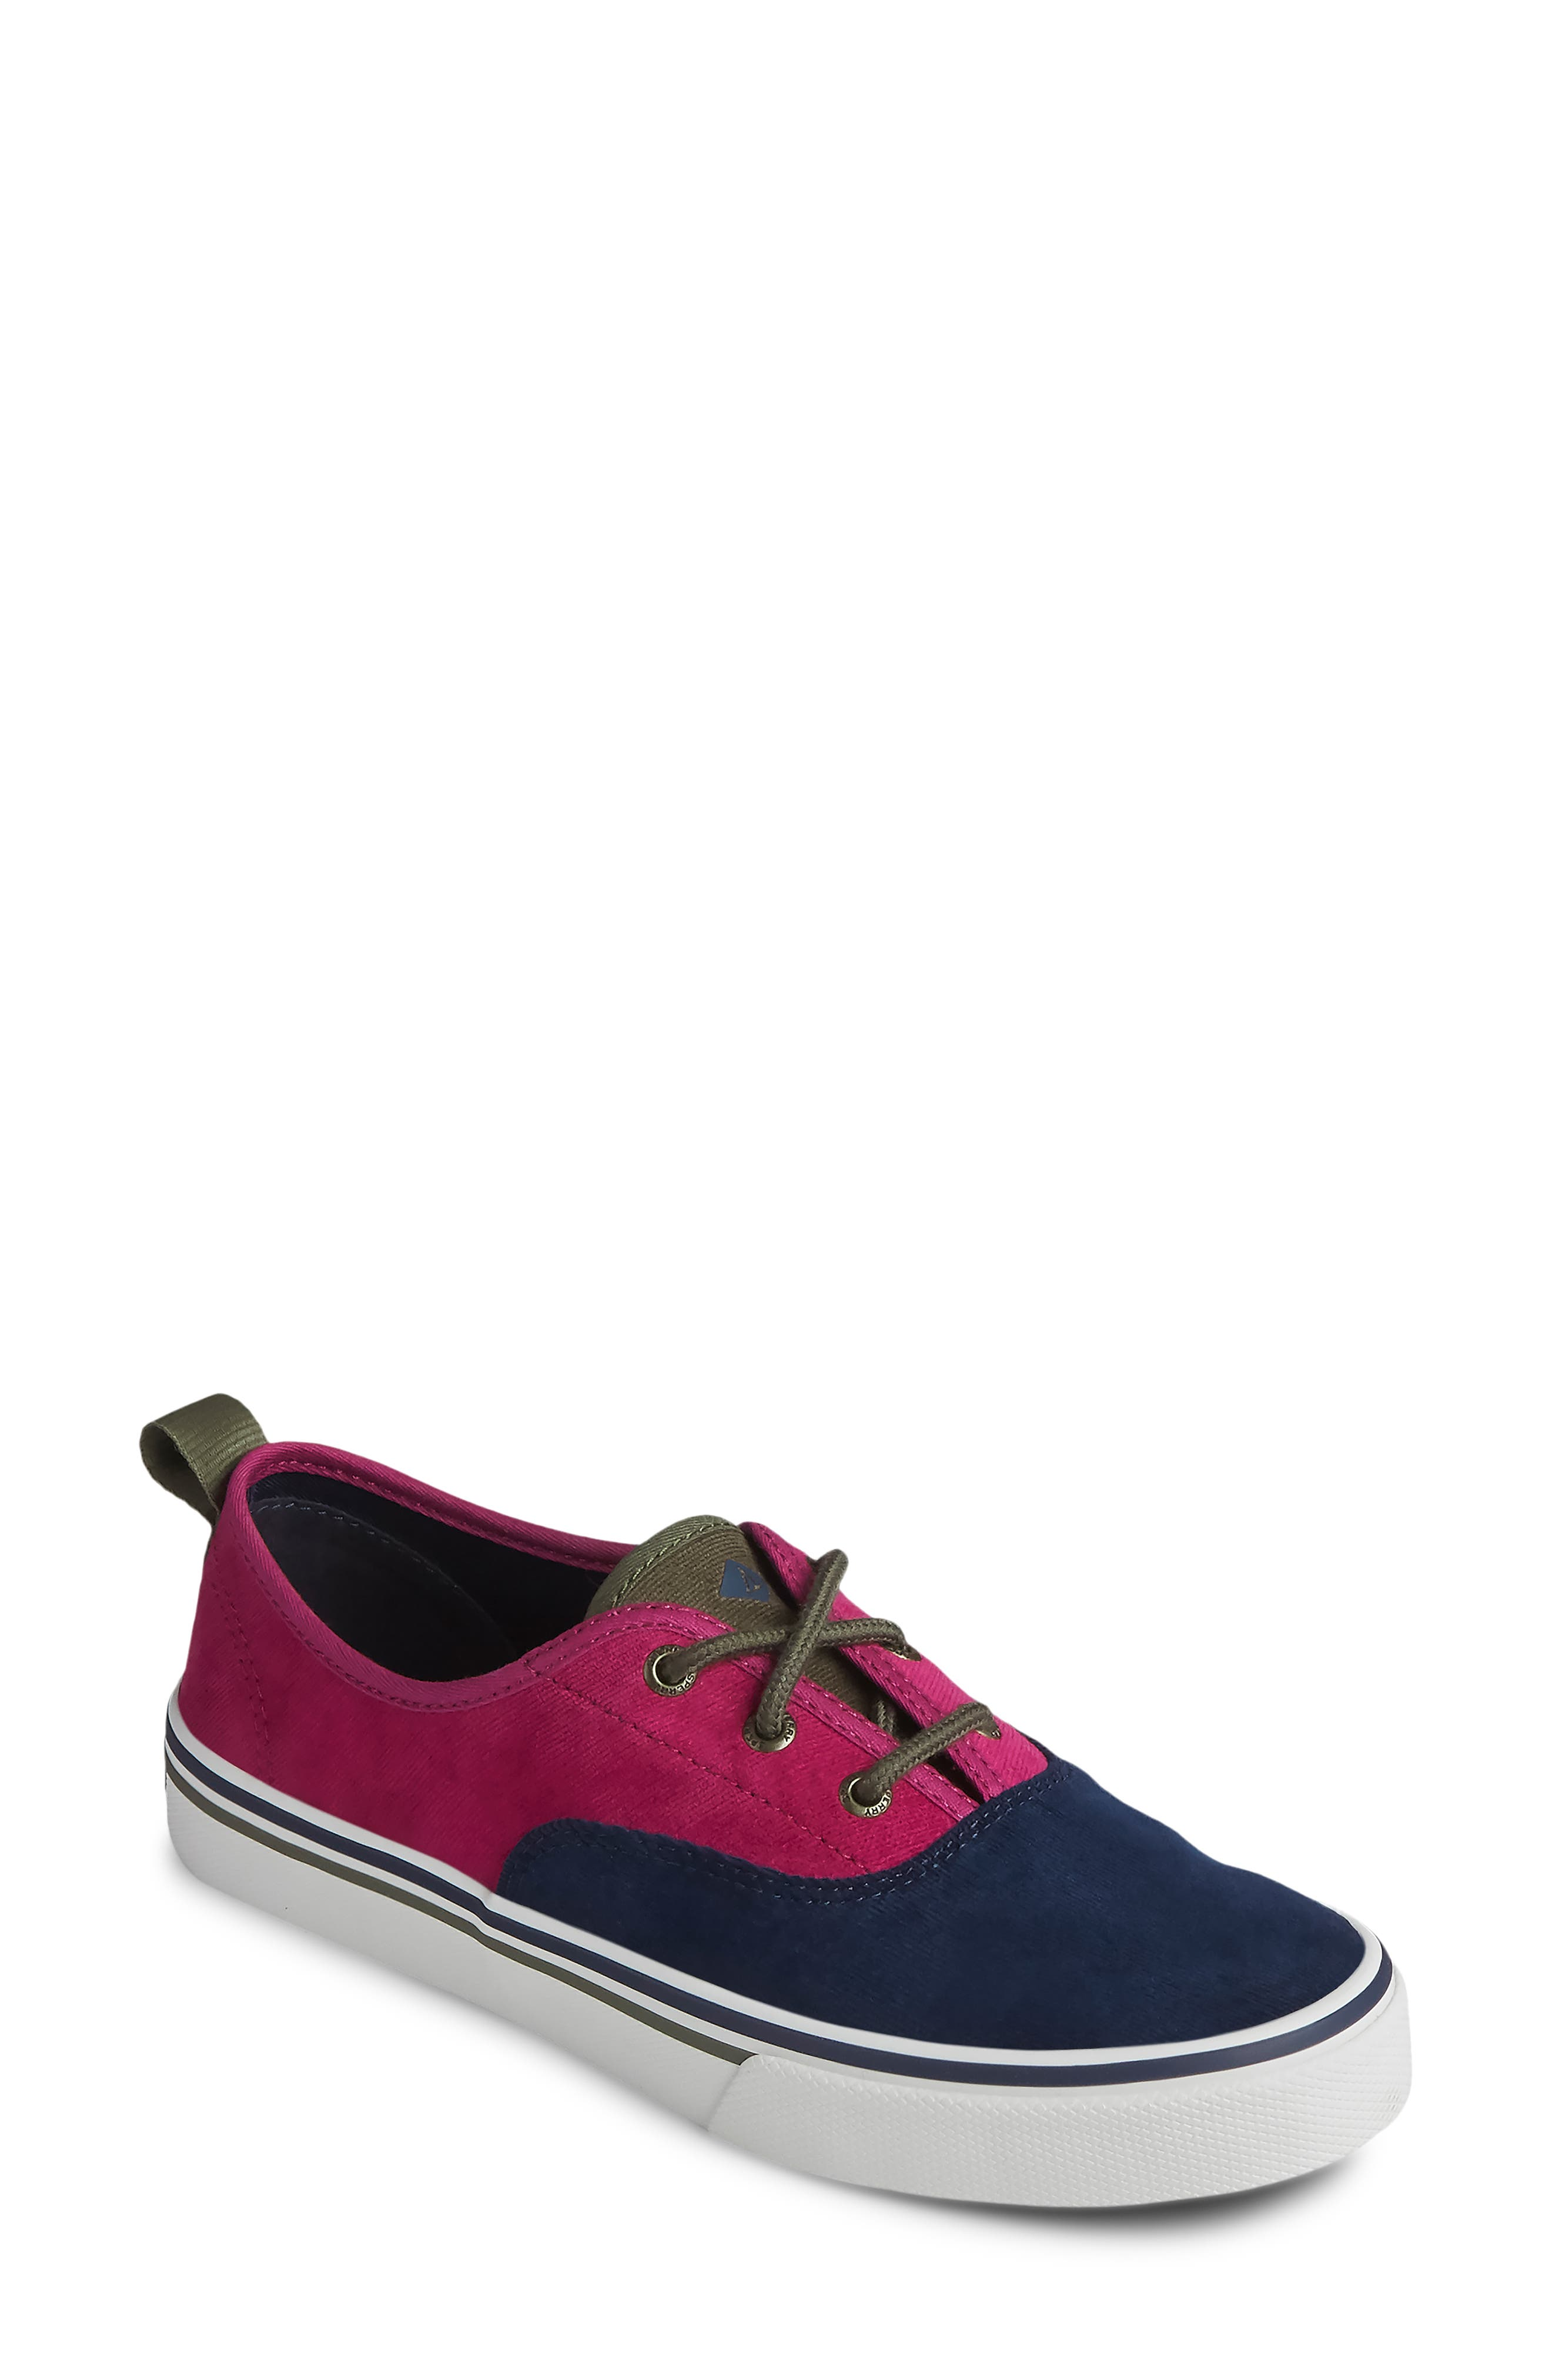 Women s Sperry Crest Cvo Sneaker E559